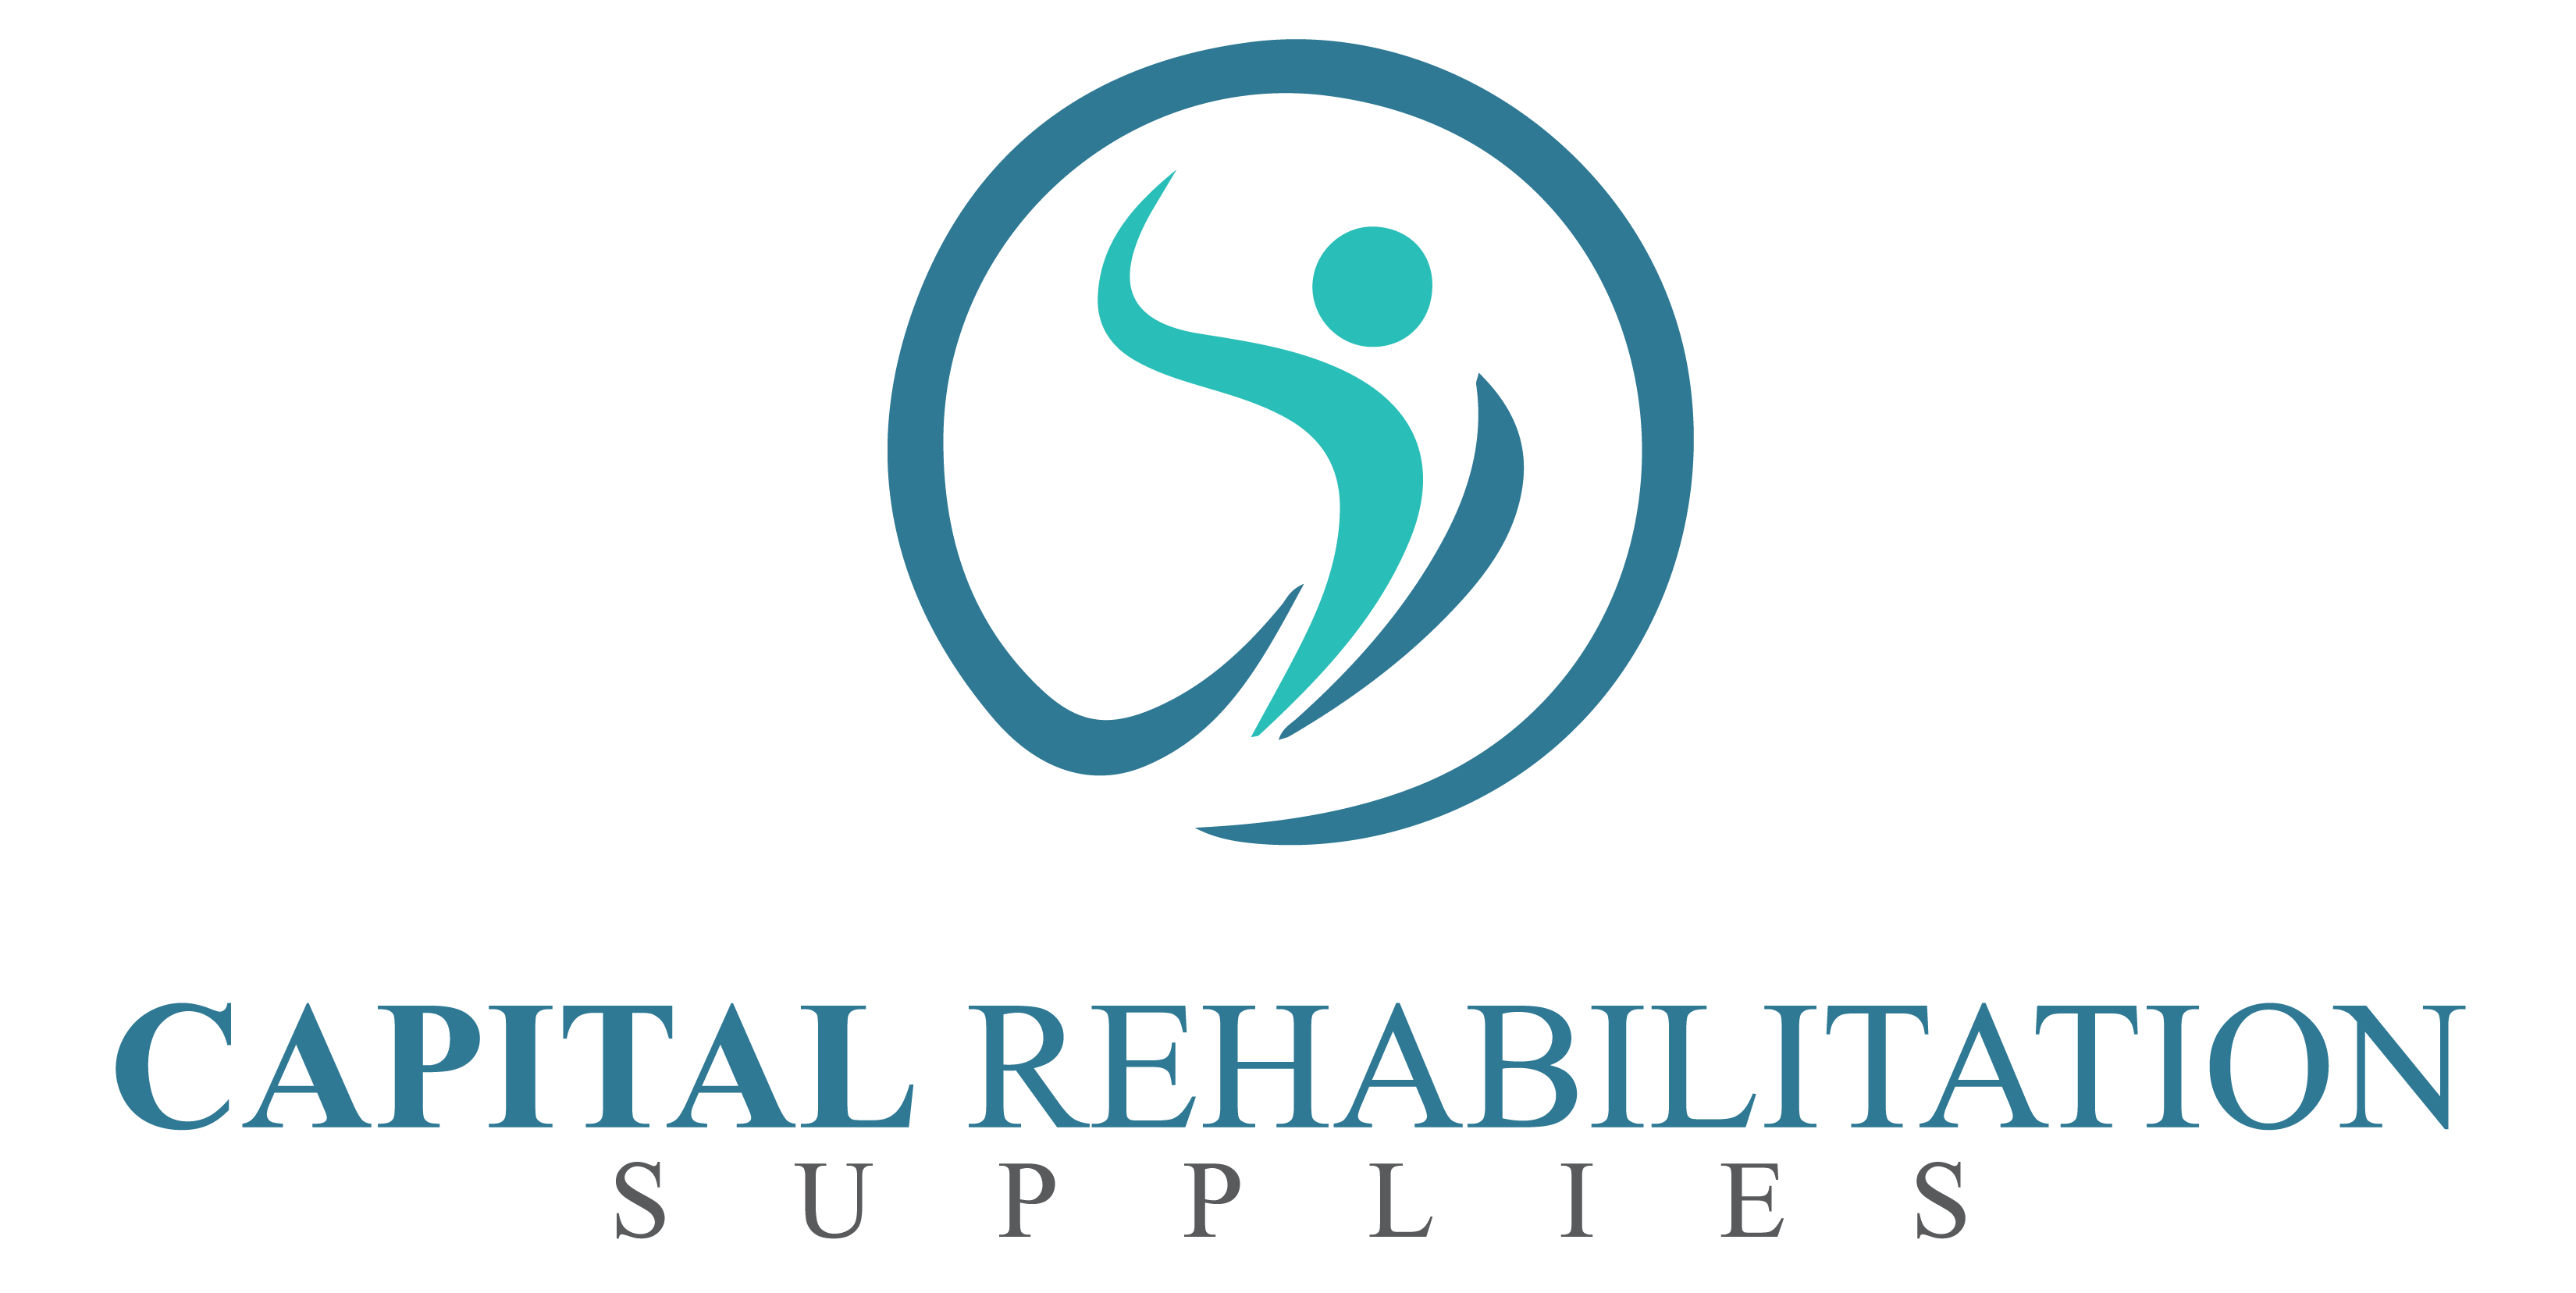 ''Capital Rehabilitation Supplies, bring rehabilitation to the nation""